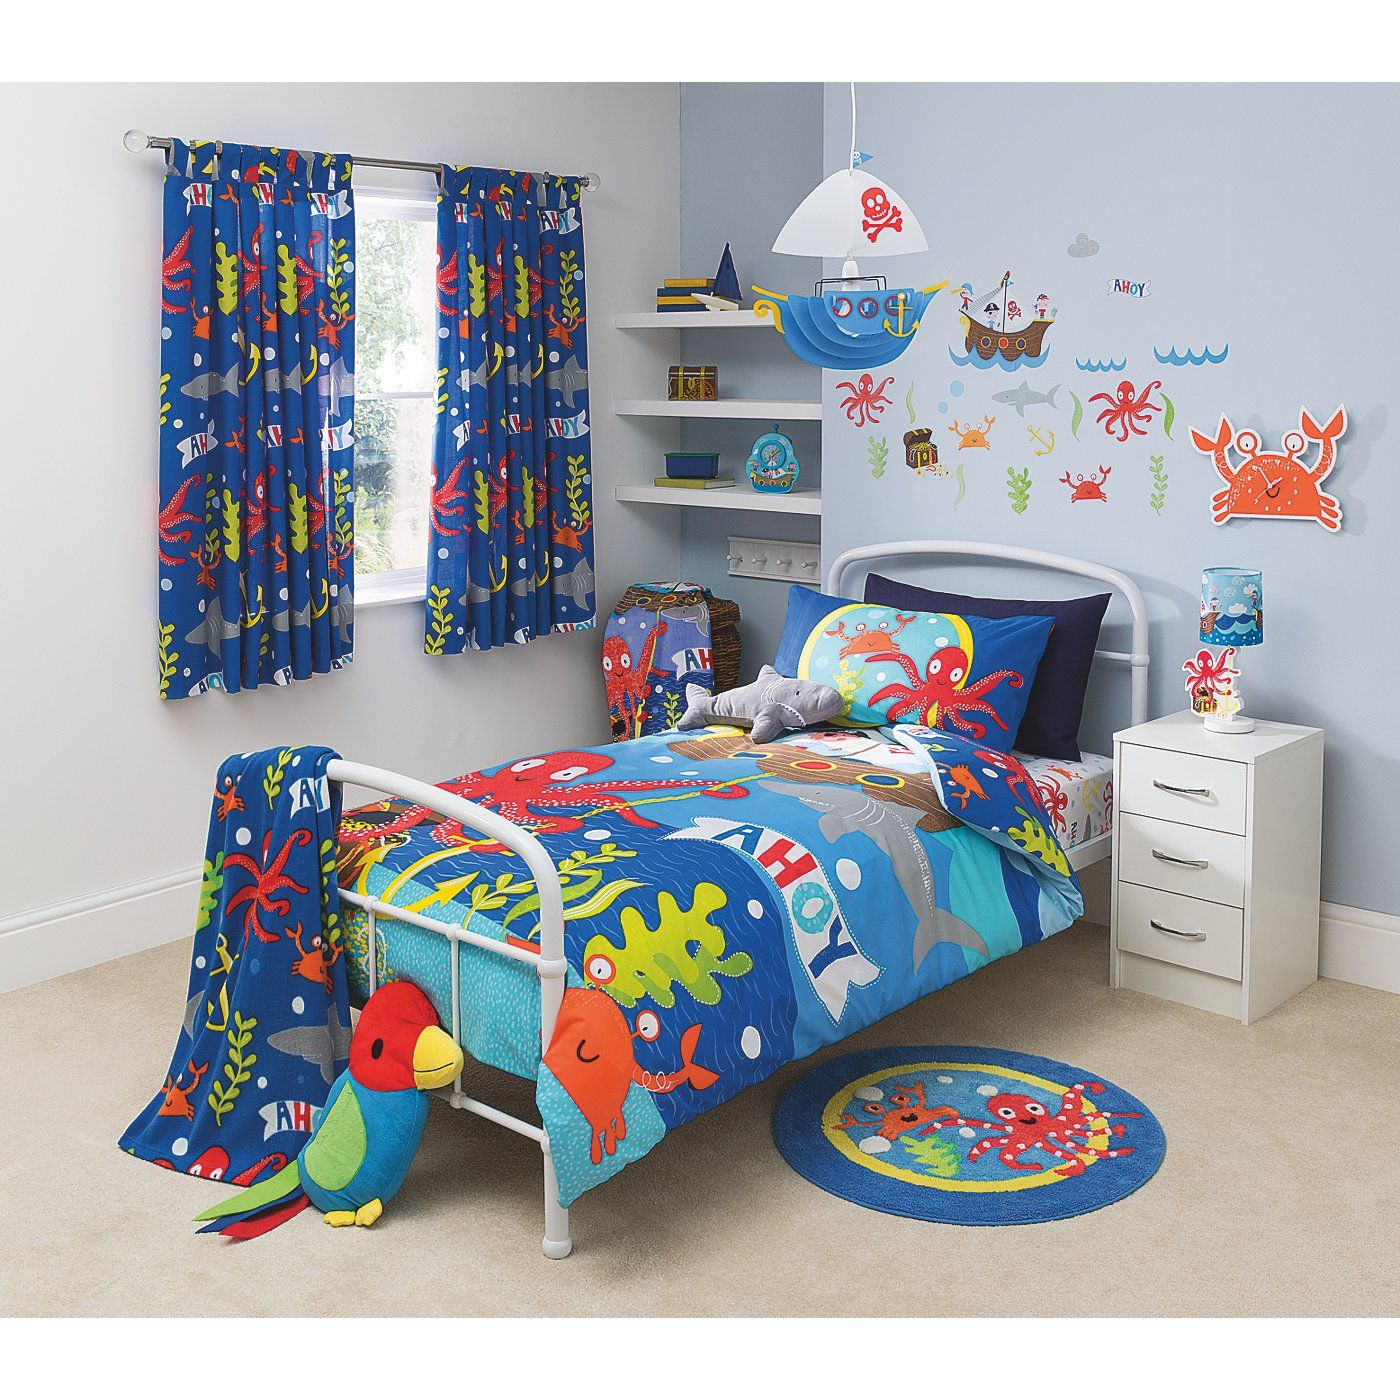 Buy George Home Pirate Bedroom Set From Our Bedding Range Today - Kids pirate bedroom furniture